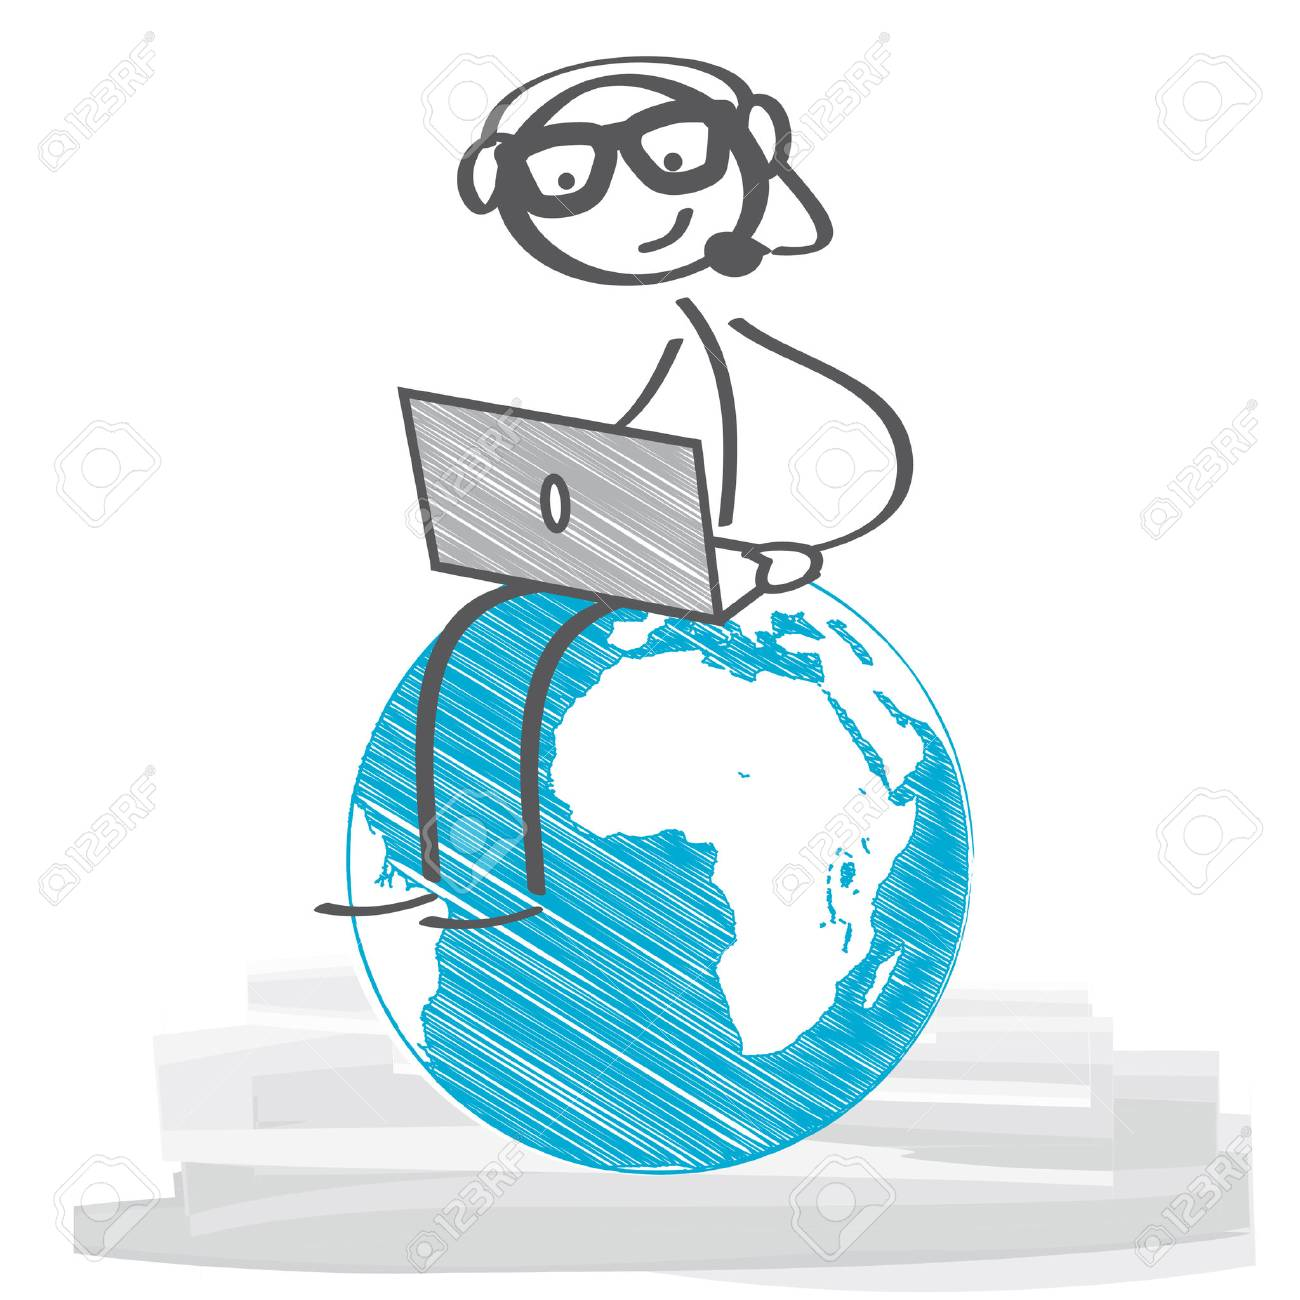 Stick figure with headset an laptop - 63947679